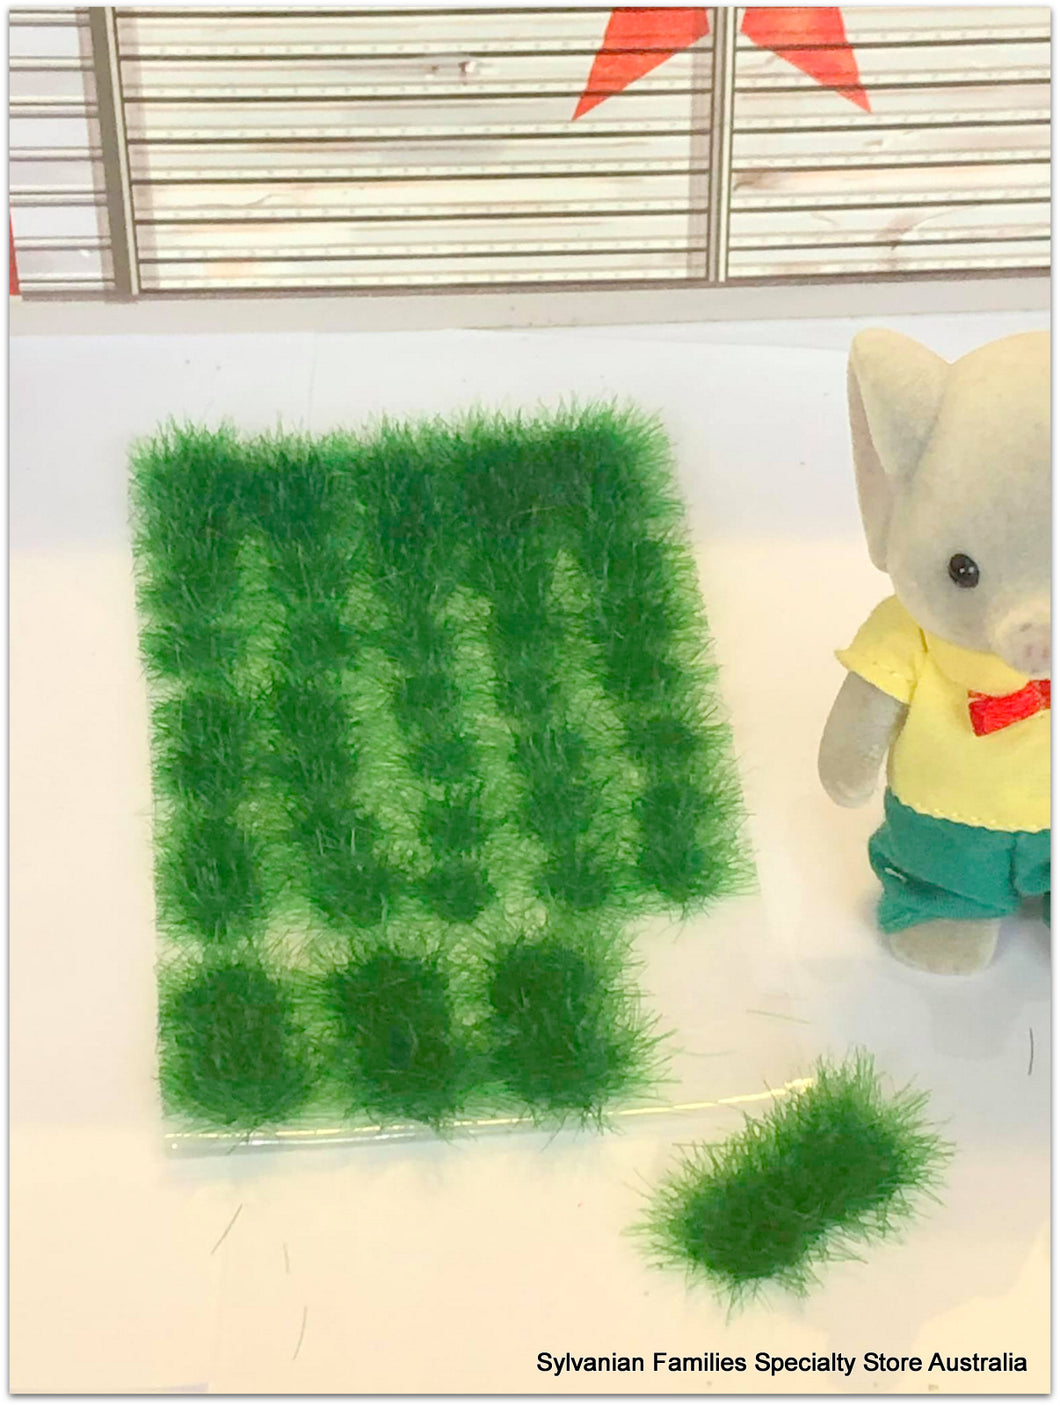 Doll house scene grass clump adhesive